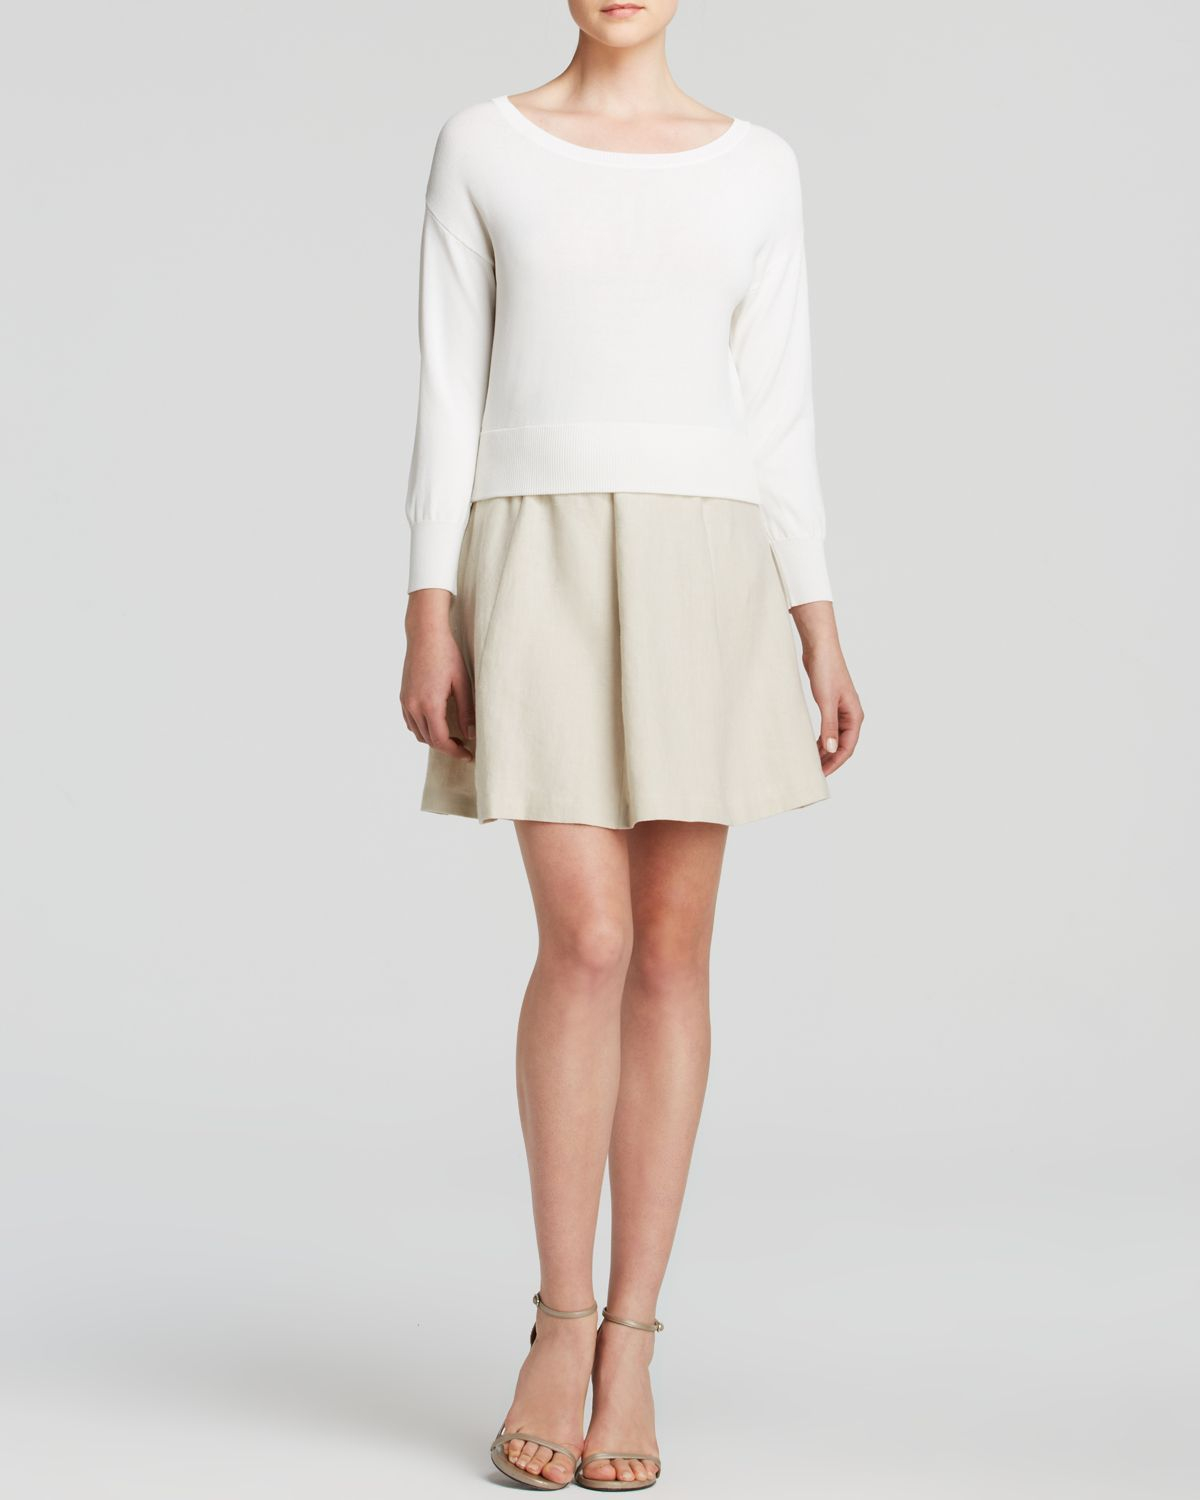 Joie Gabele B Cropped Sweater in White | Lyst